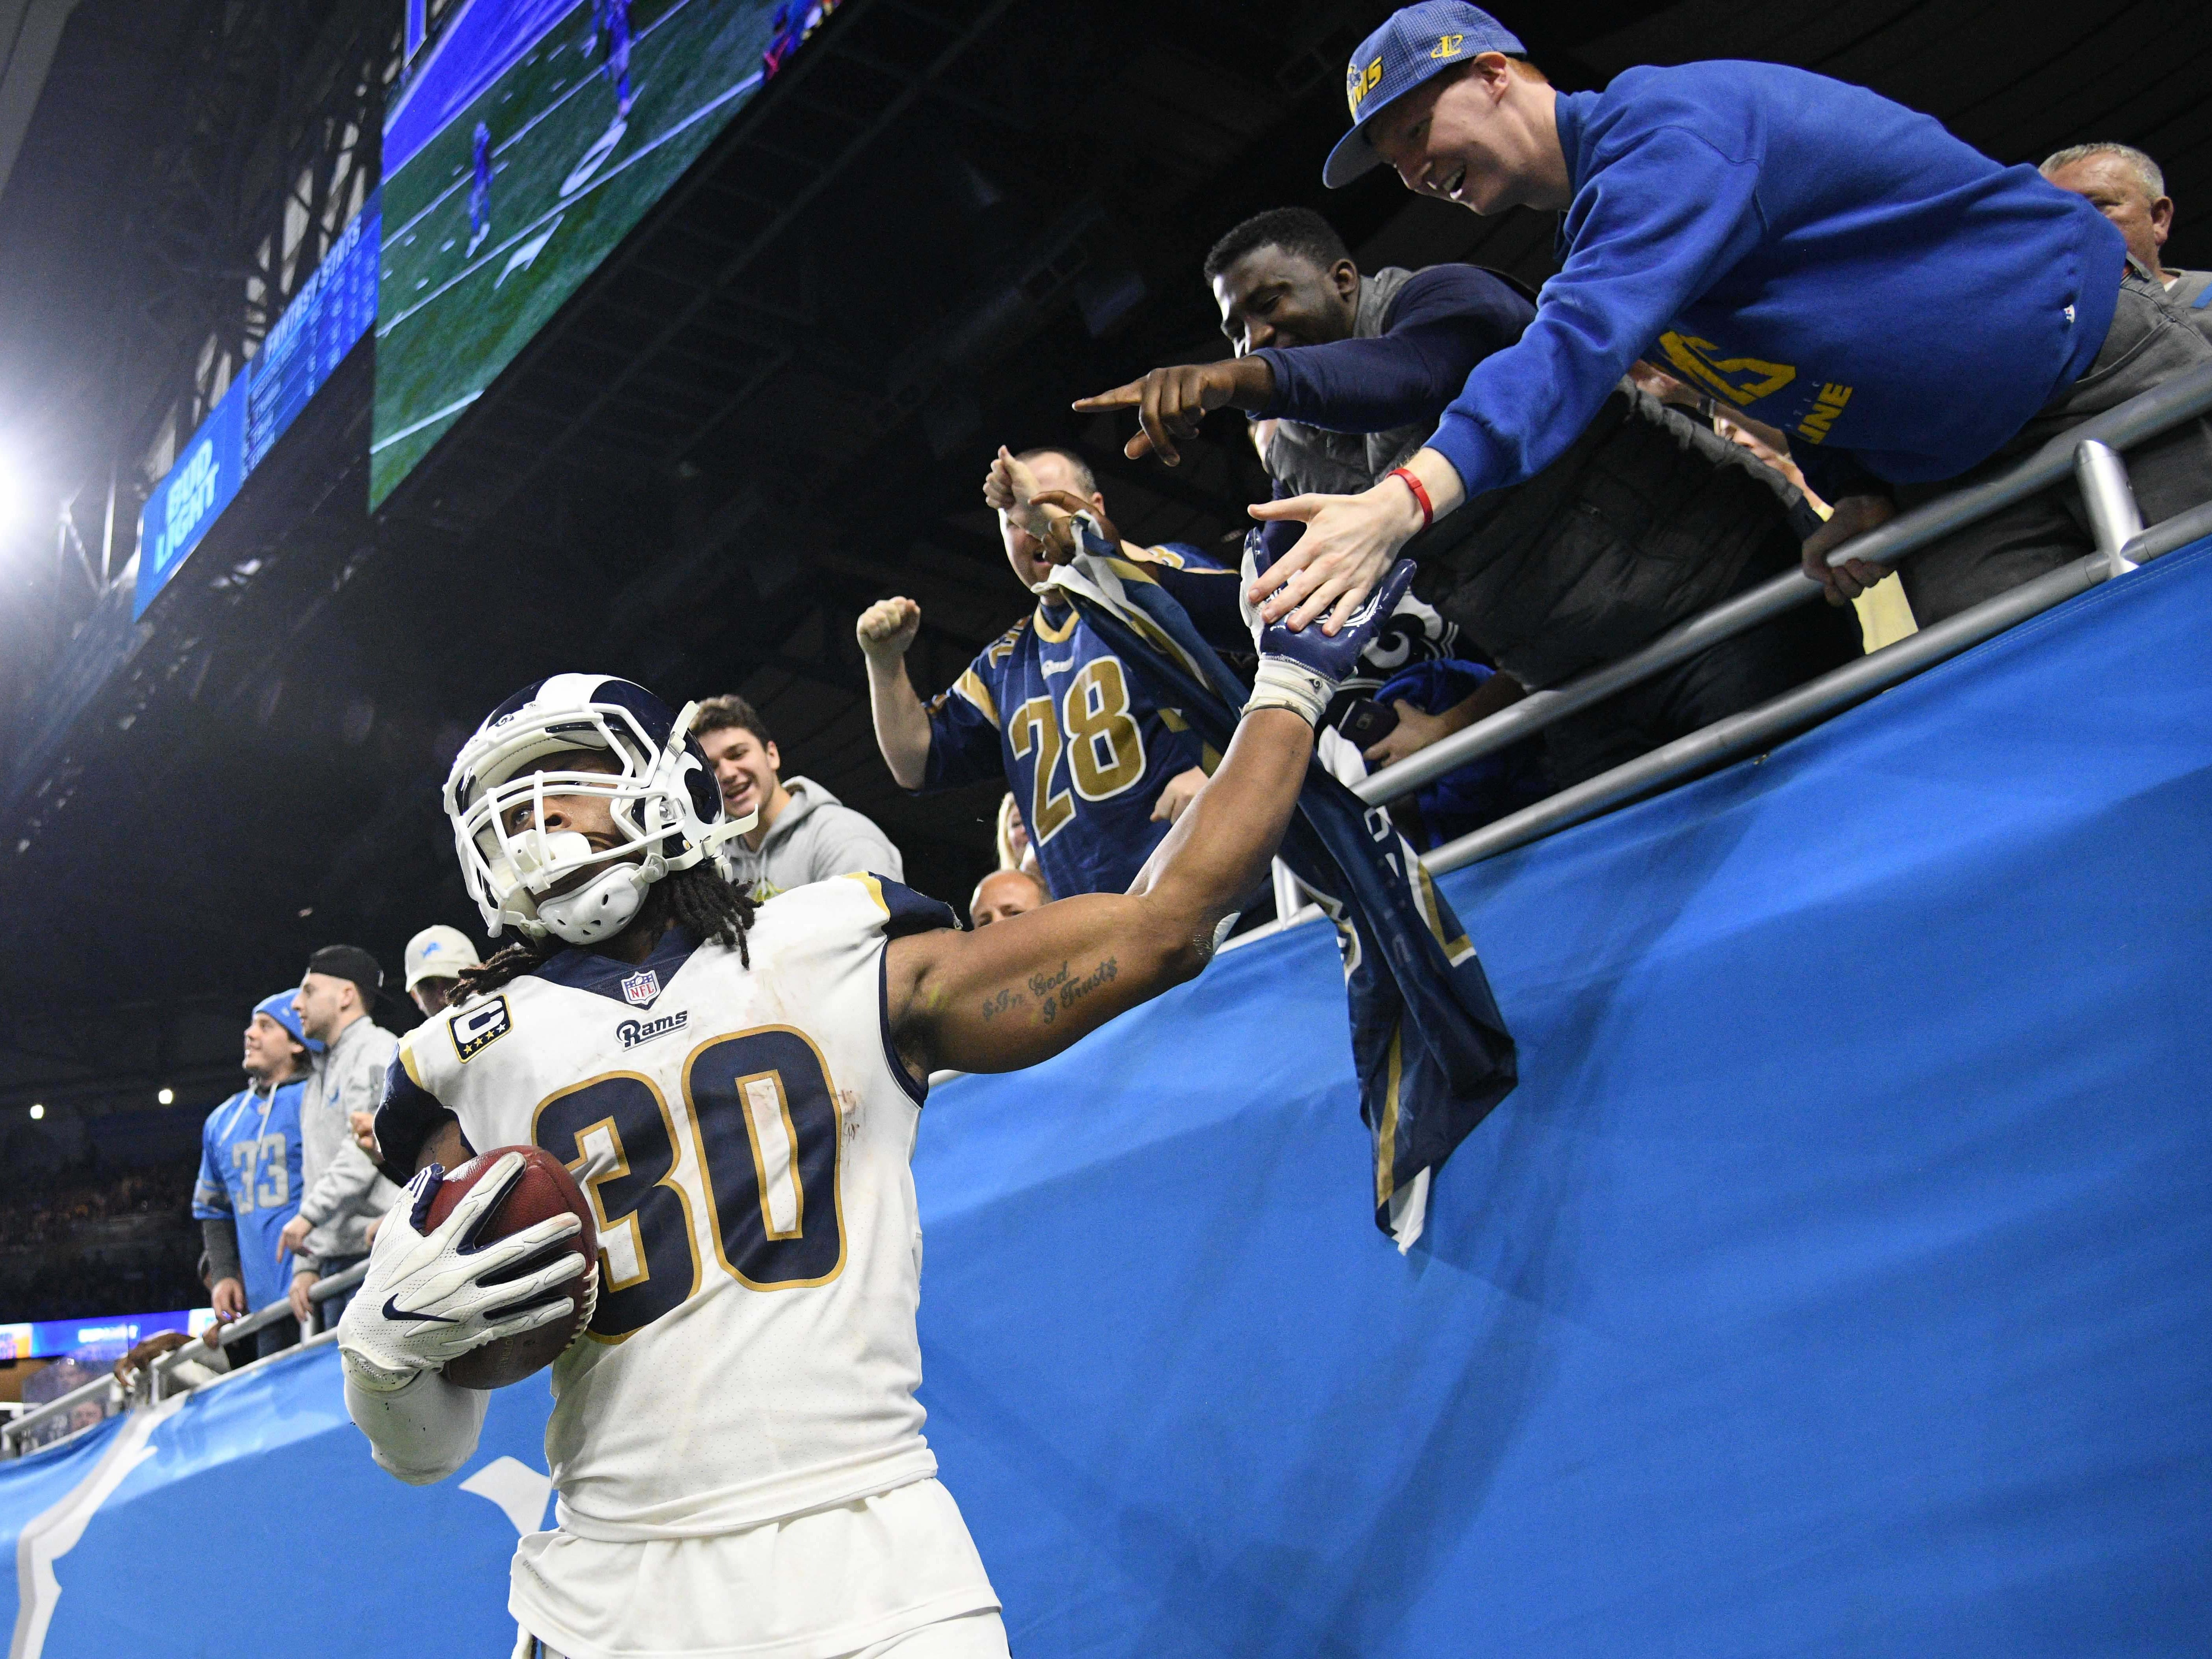 Los Angeles Rams running back Todd Gurley (30) celebrates his touchdown with fans during the second half against the Detroit Lions at Ford Field.